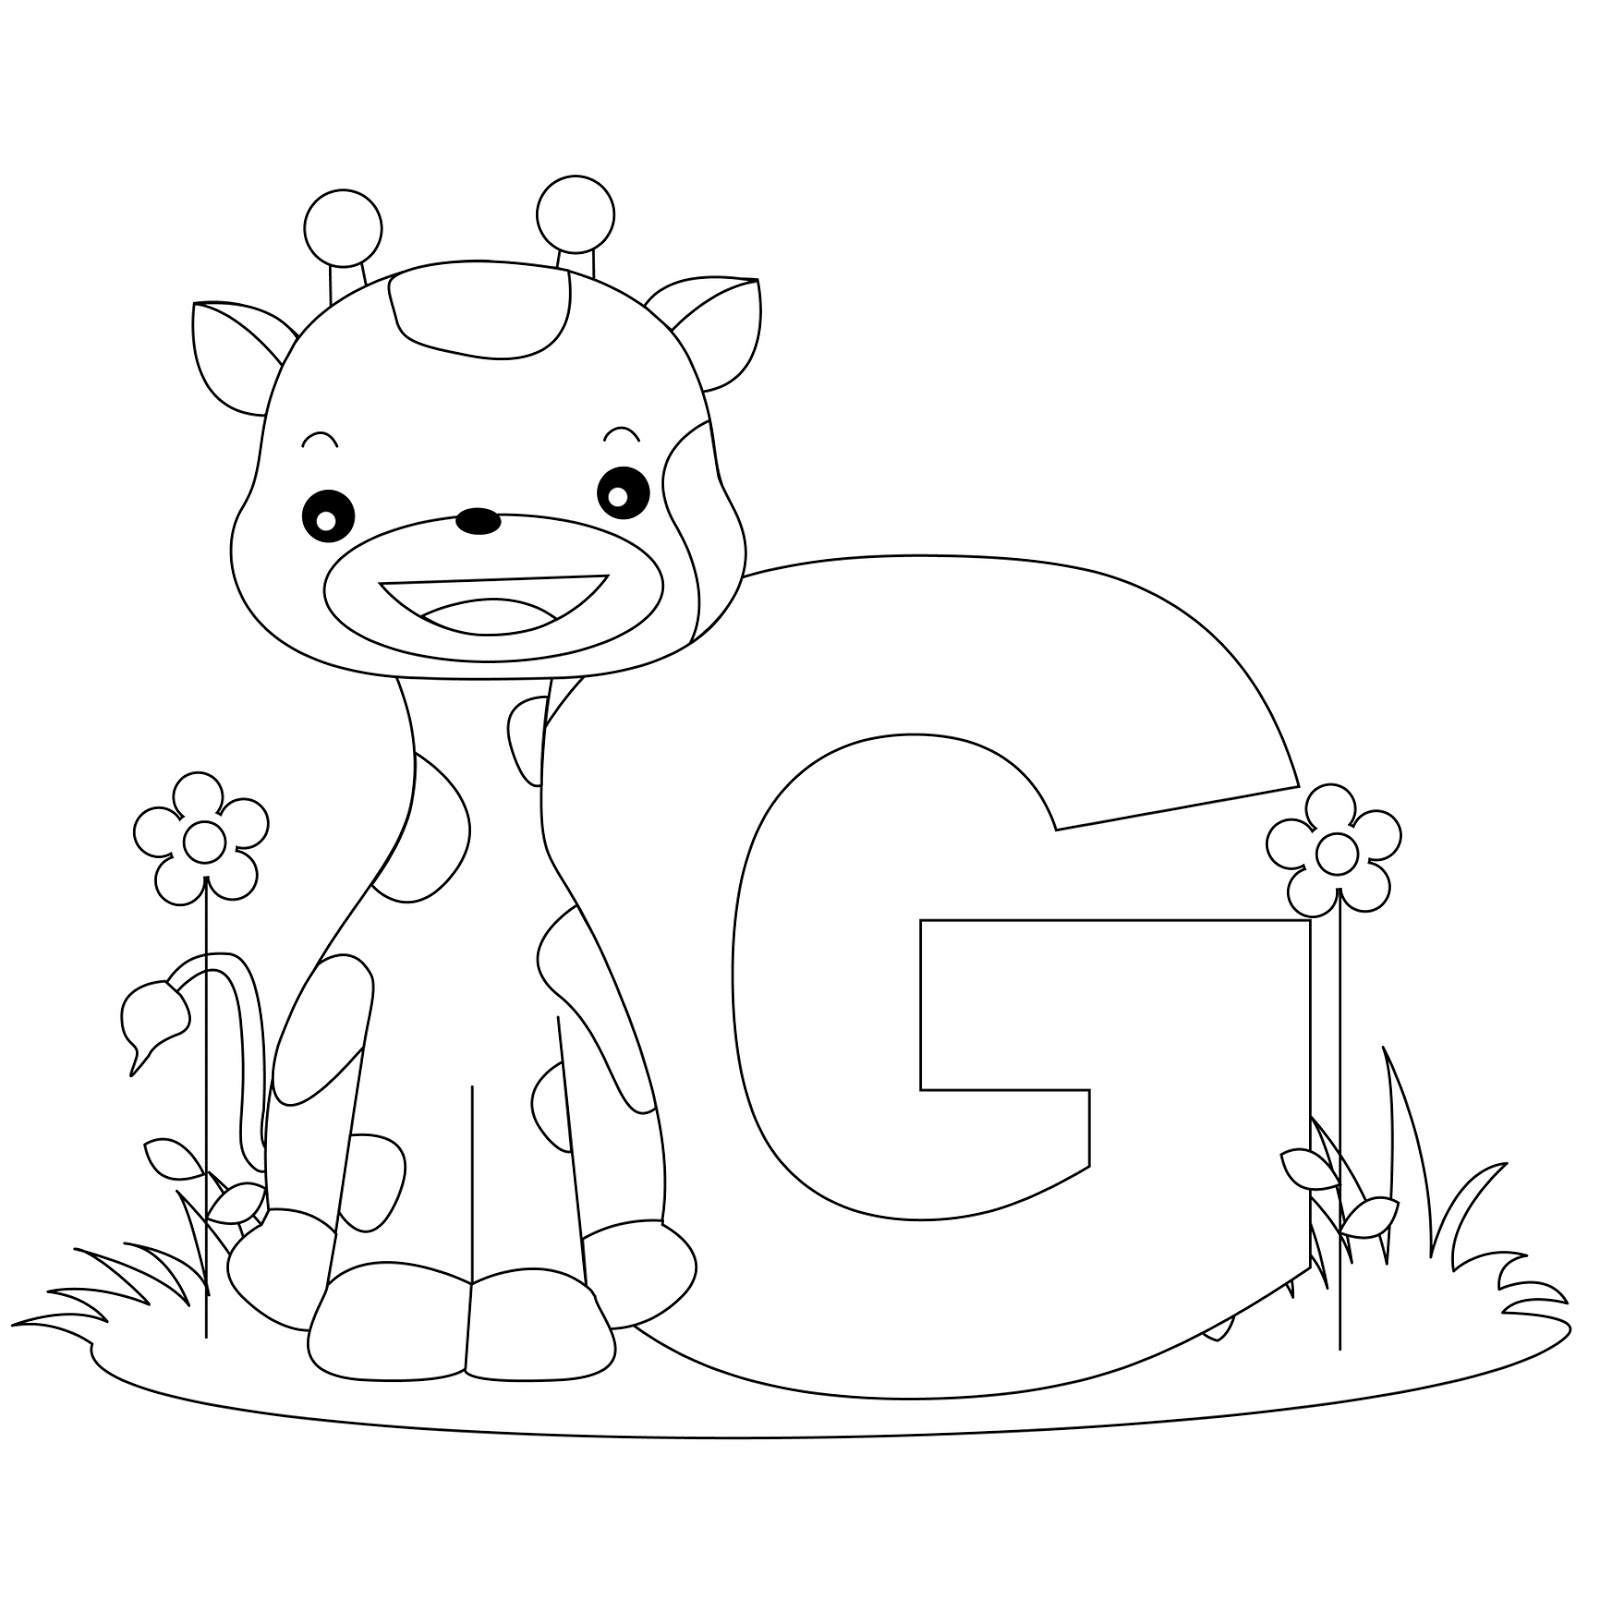 alphabet coloring pages for preschool - photo#27